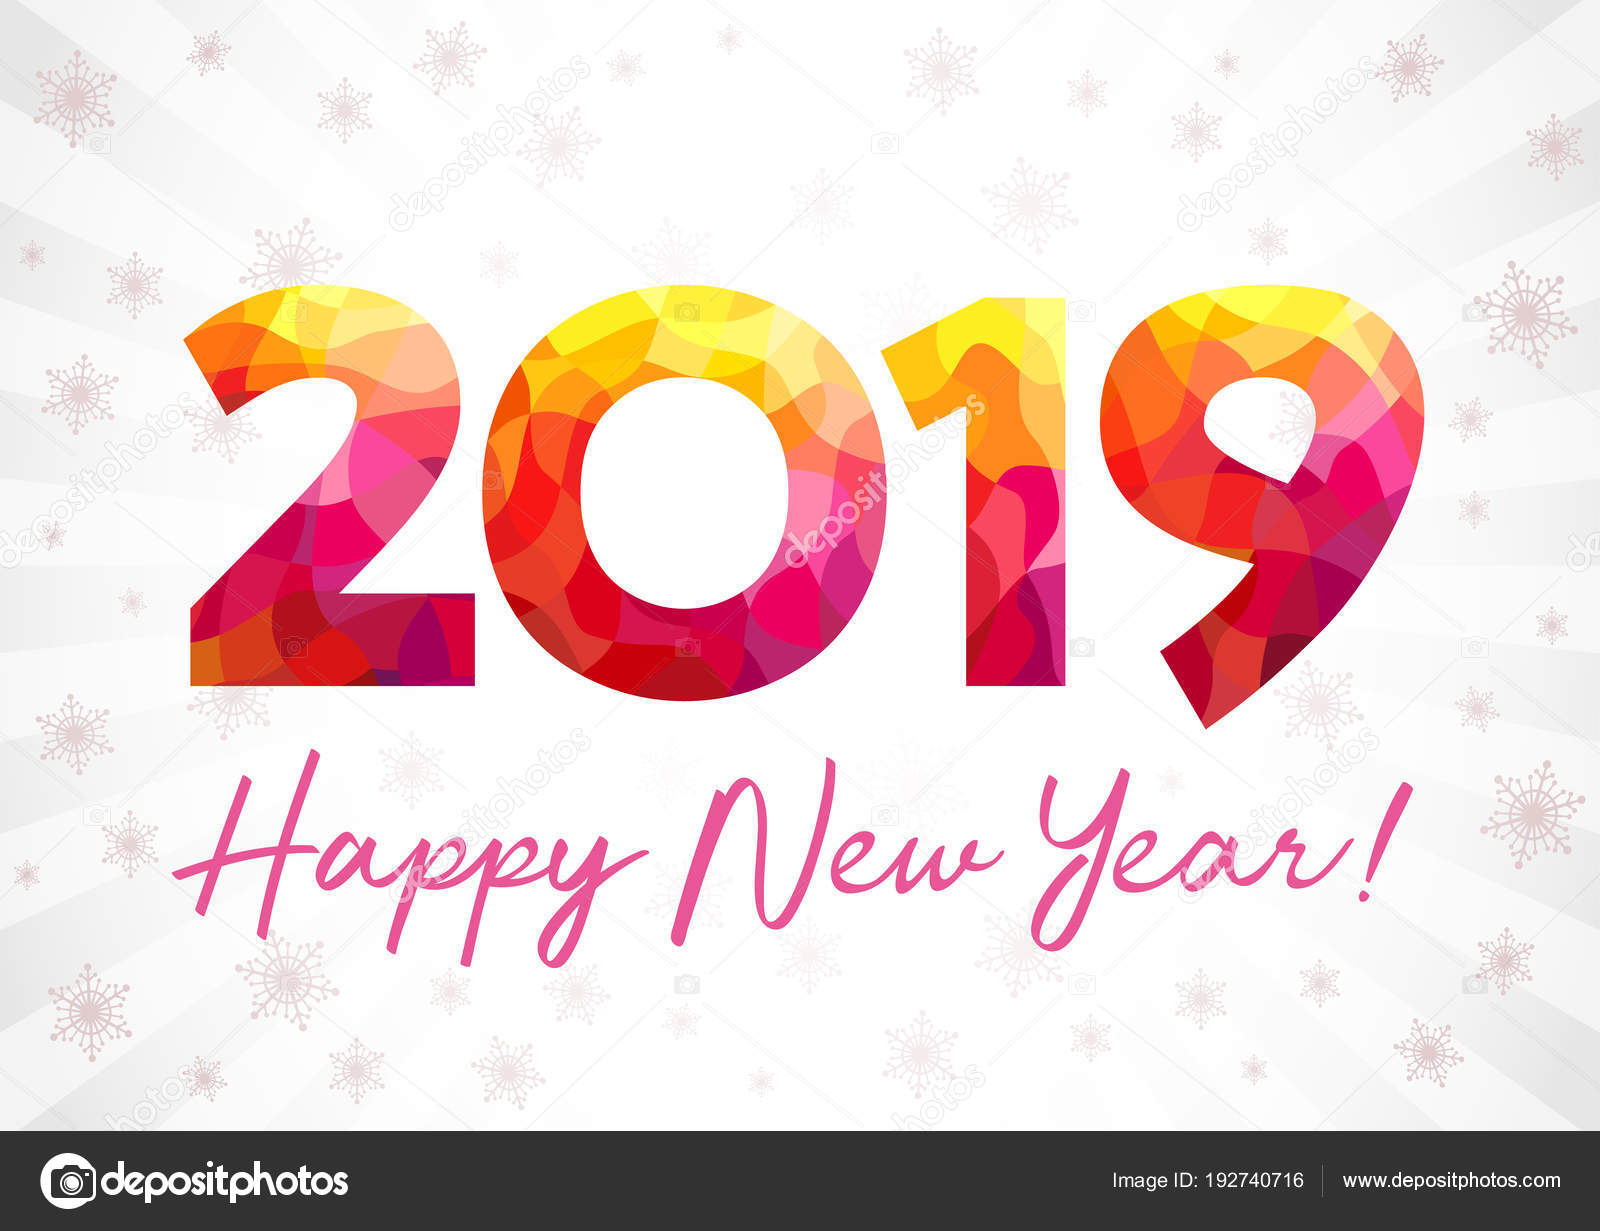 2019 Happy New Year Xmas Greetings White Snowy Winter Background ...